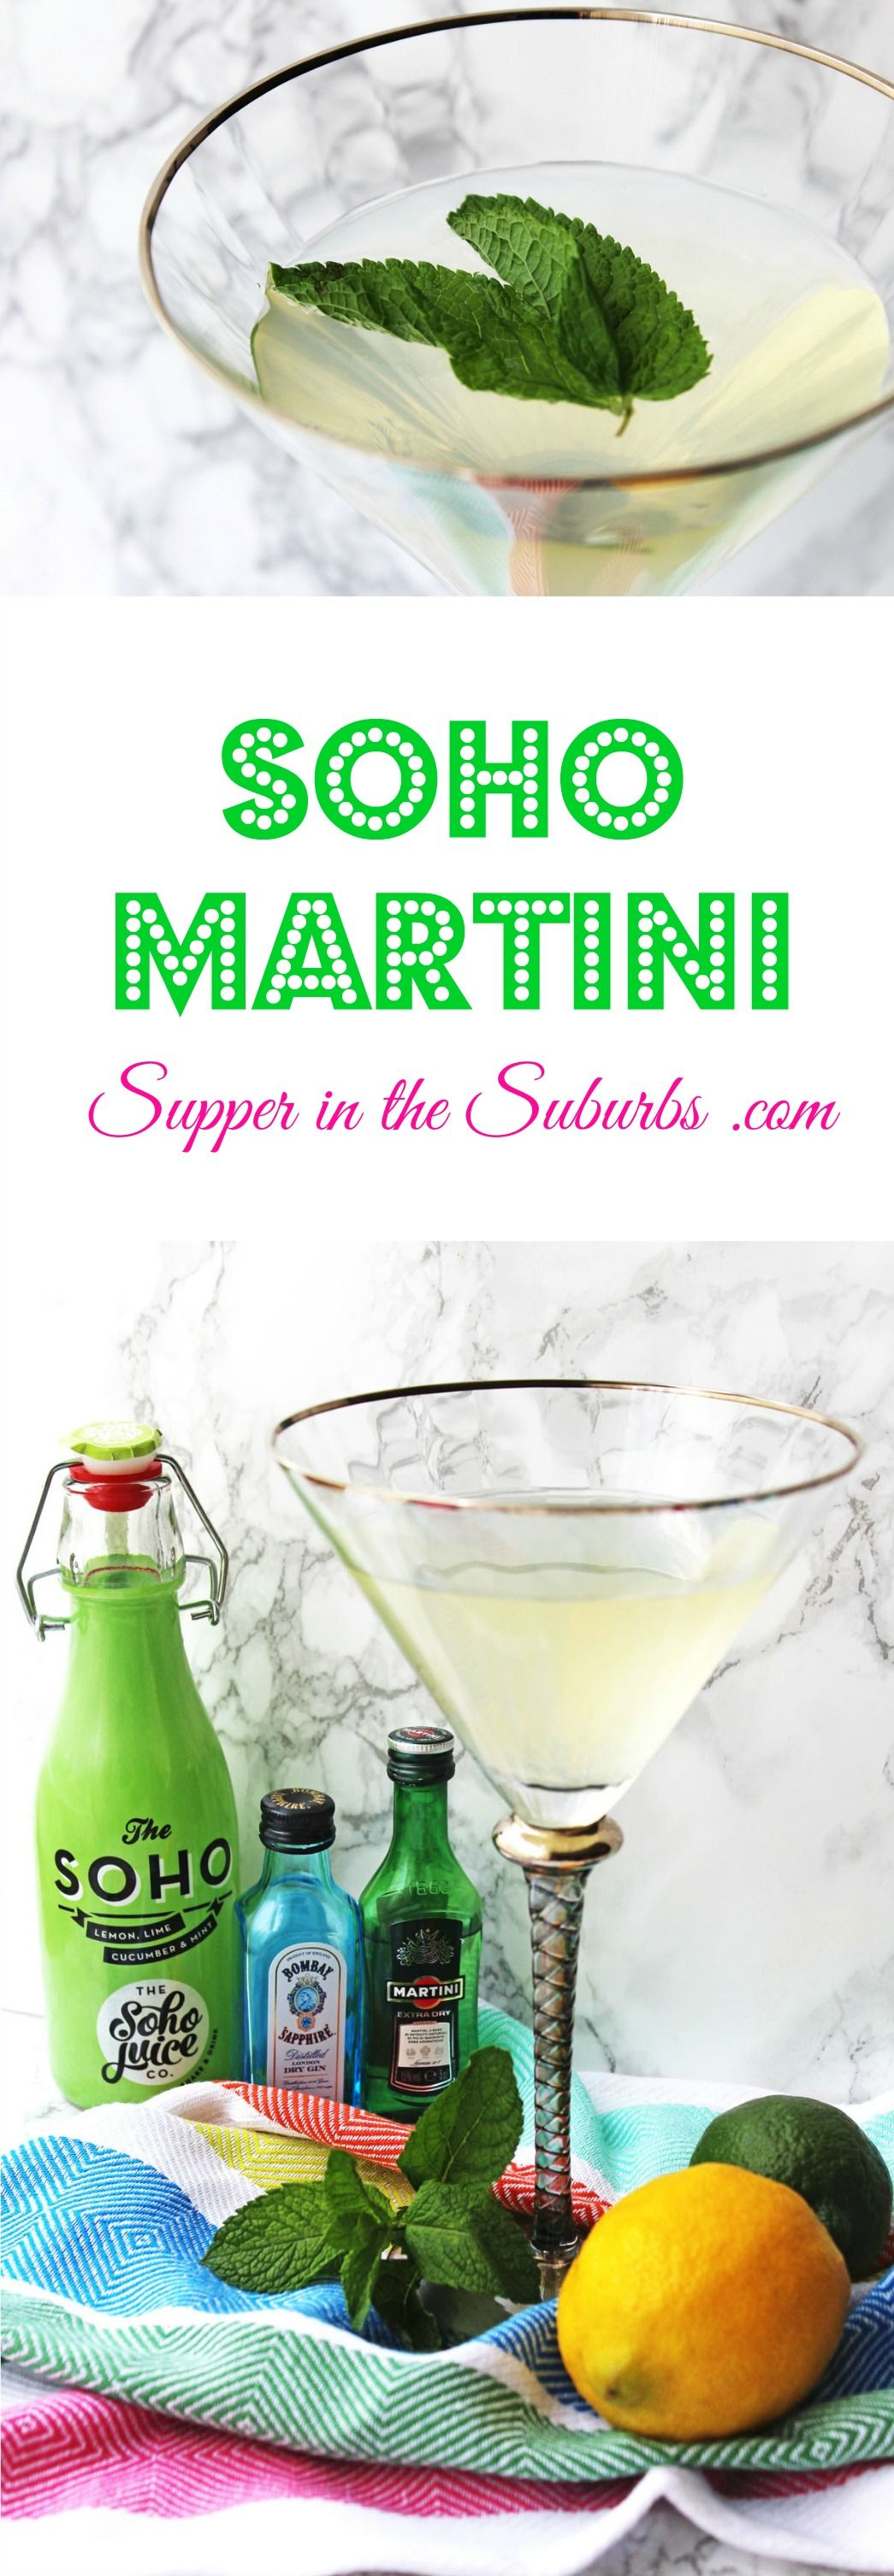 Check out the Soho Martini made with a cucumber mint and citrus fruit soft drink from the Soho Juice Co. It's the perfect cocktail for a garden party, picnic, or evening out in the sunshine. Get the recipe from Supper in the Suburbs.